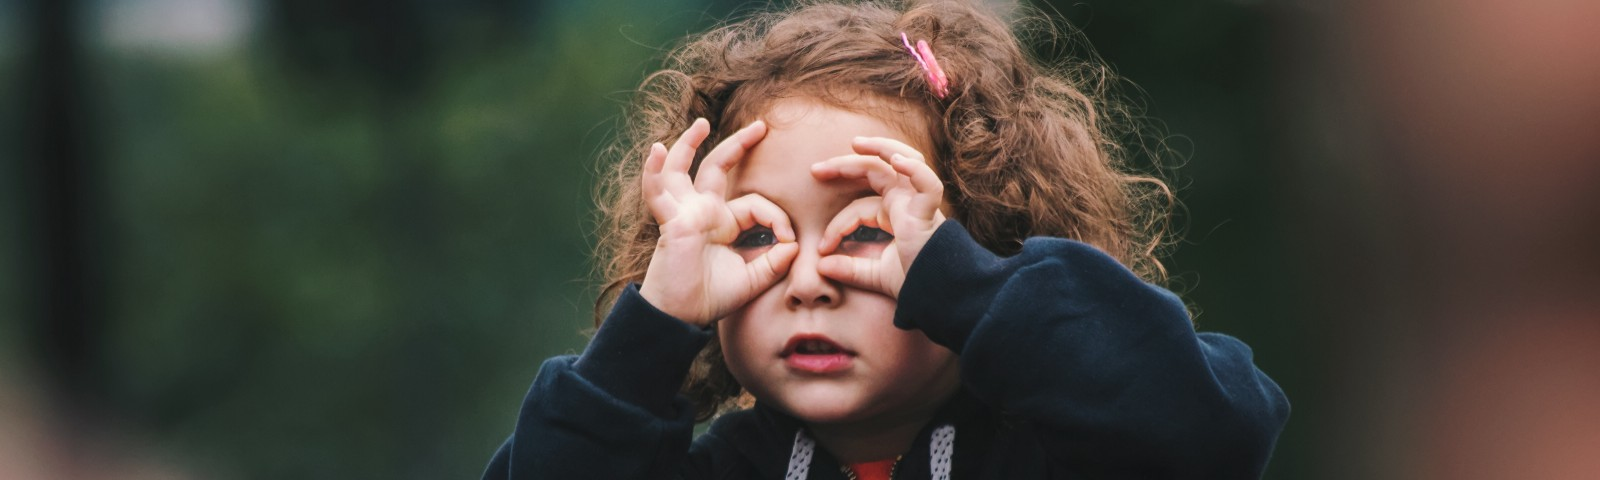 A little girl seeing through the lens of her fingers